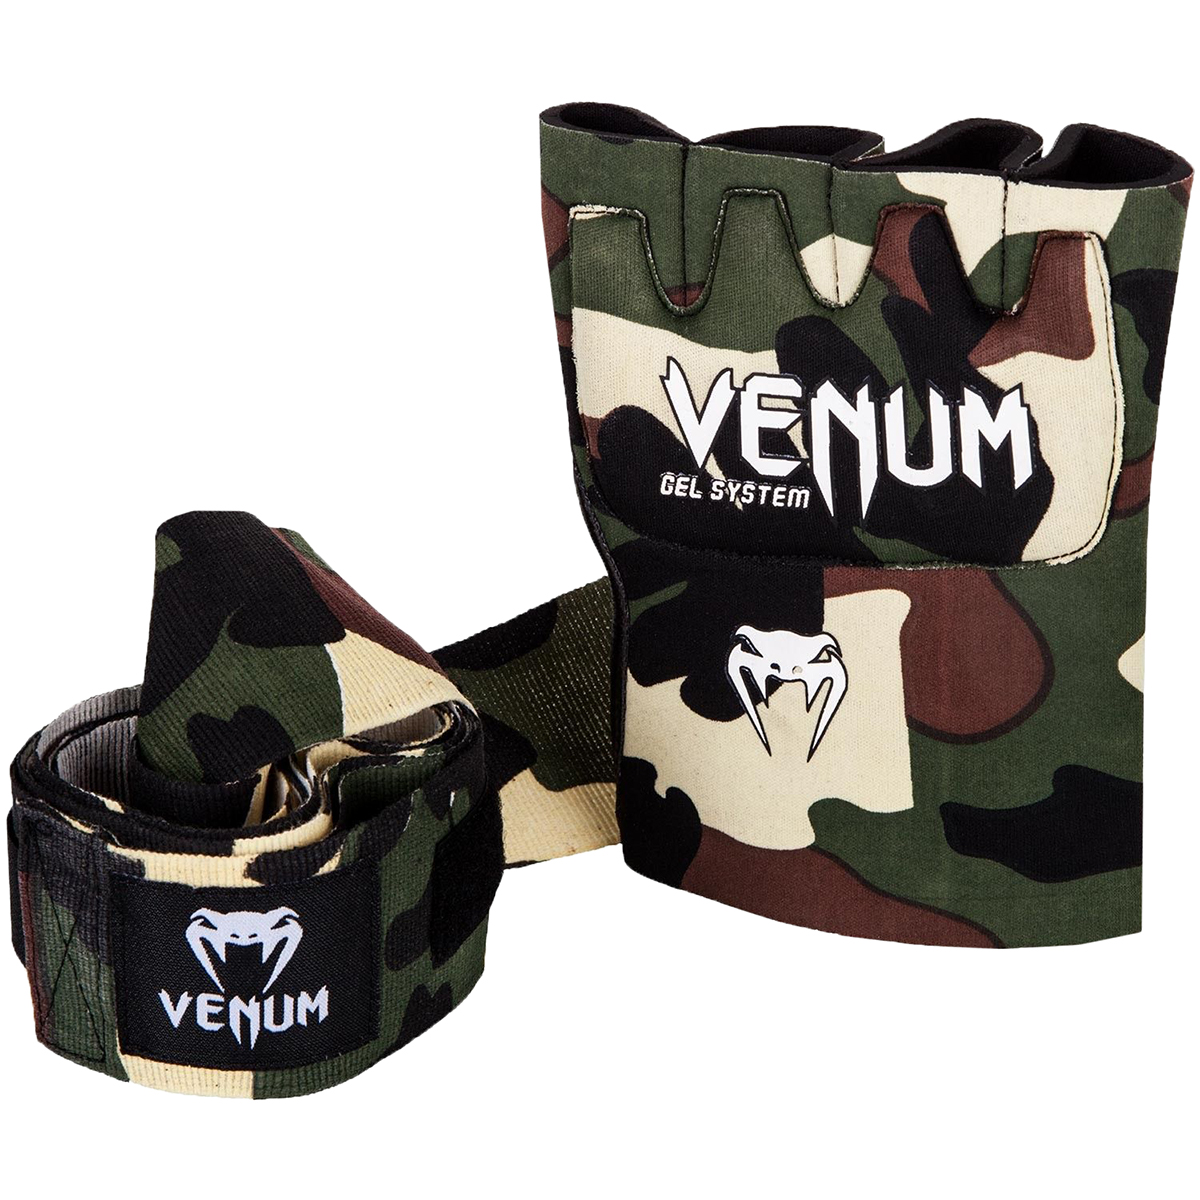 Venum-Kontact-Protective-Shock-Absorbing-Gel-MMA-Glove-Wraps thumbnail 27